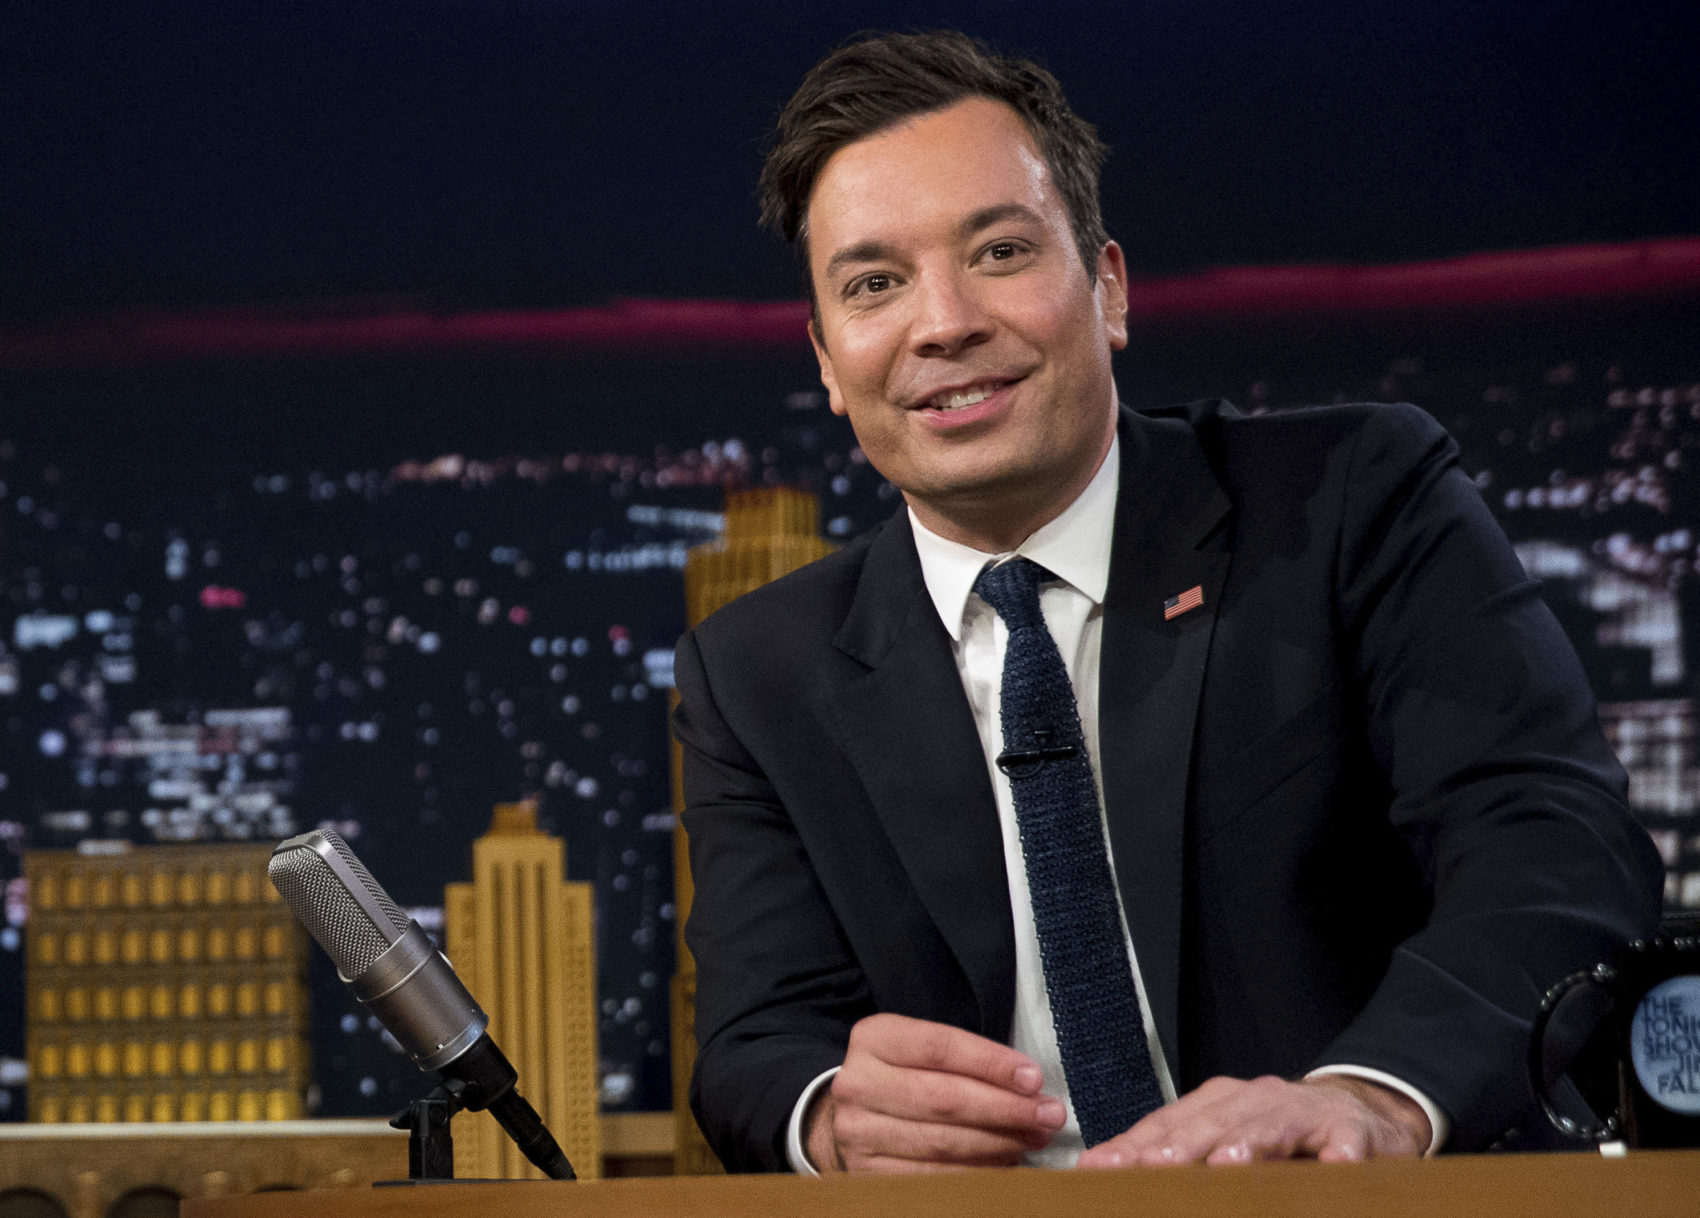 Jimmy Fallon 'dropped' on Twitter over blackface sketch from 2000